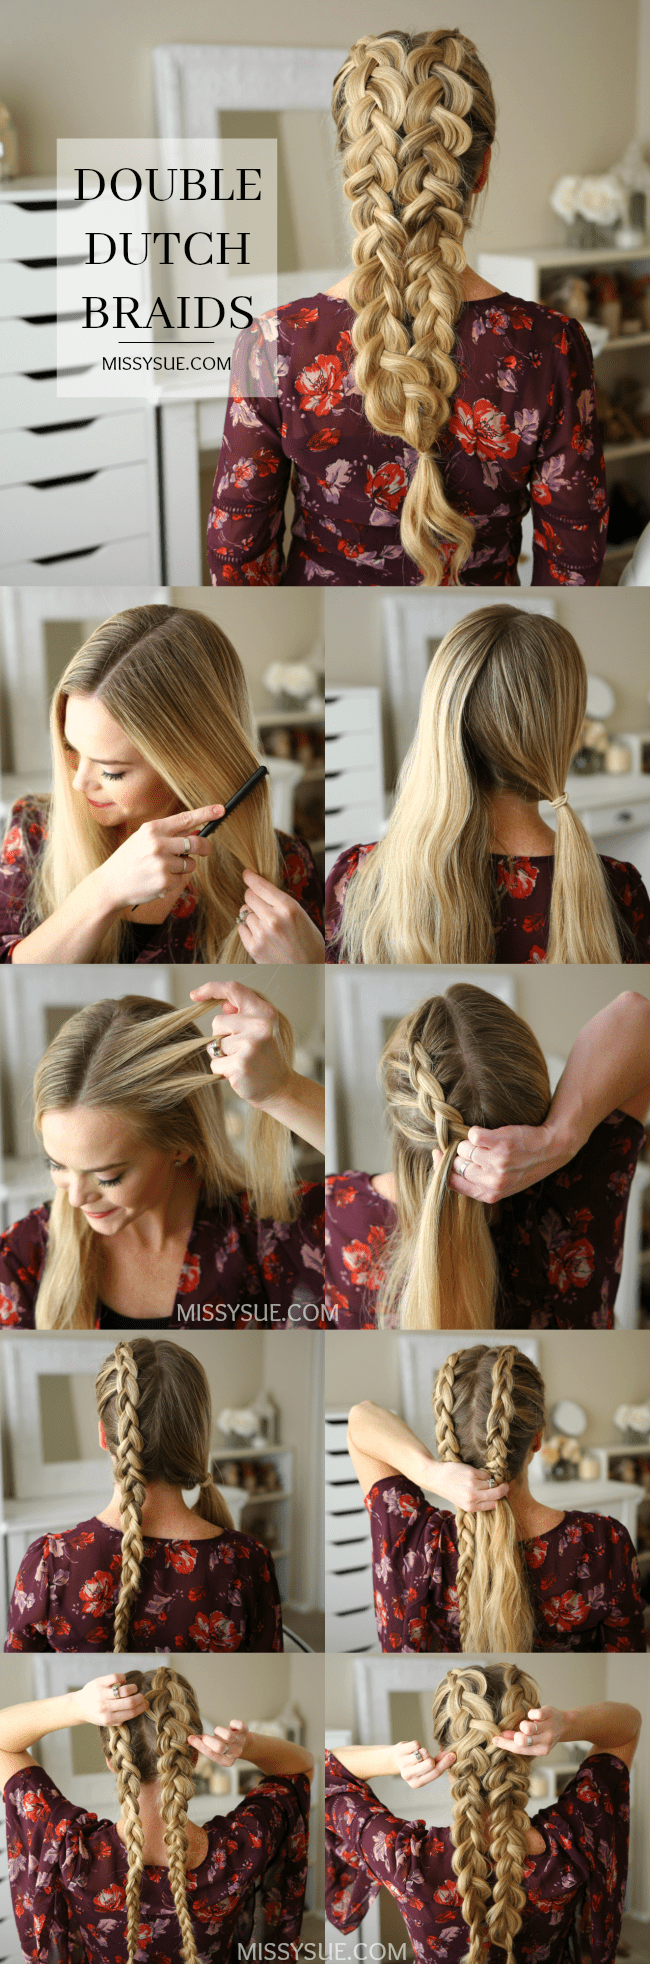 double-dutch-braids-hair-tutorial-2